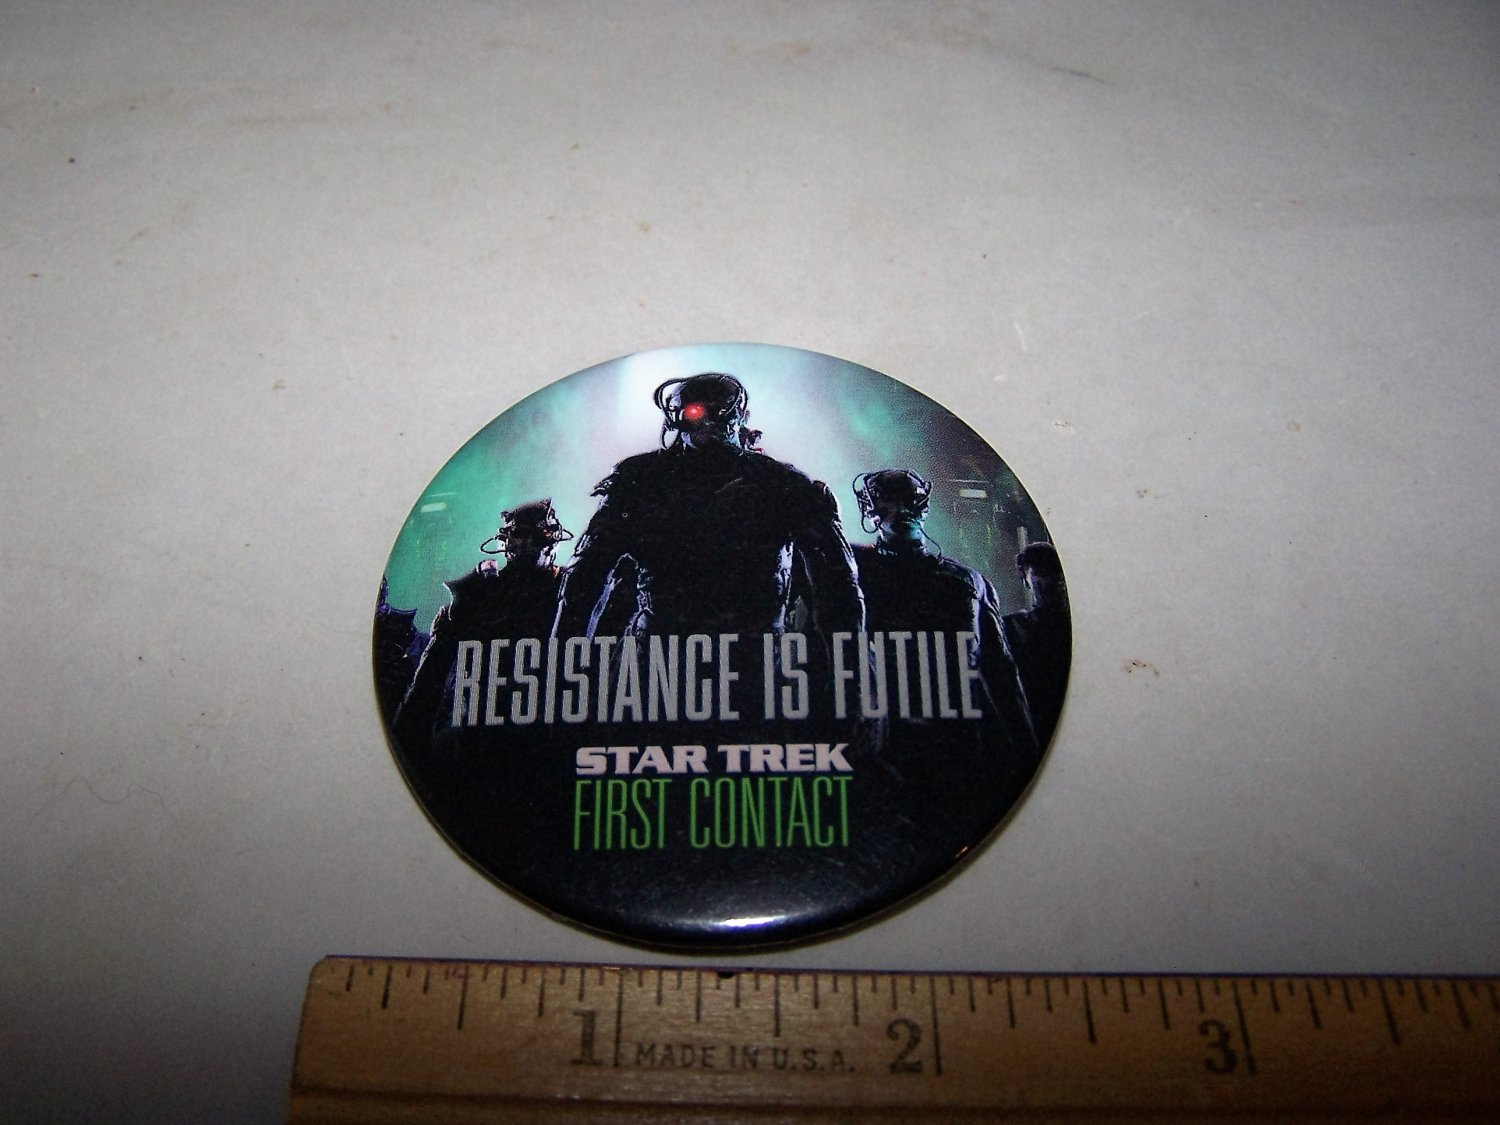 first contact star trek resistance is futile movie promo button